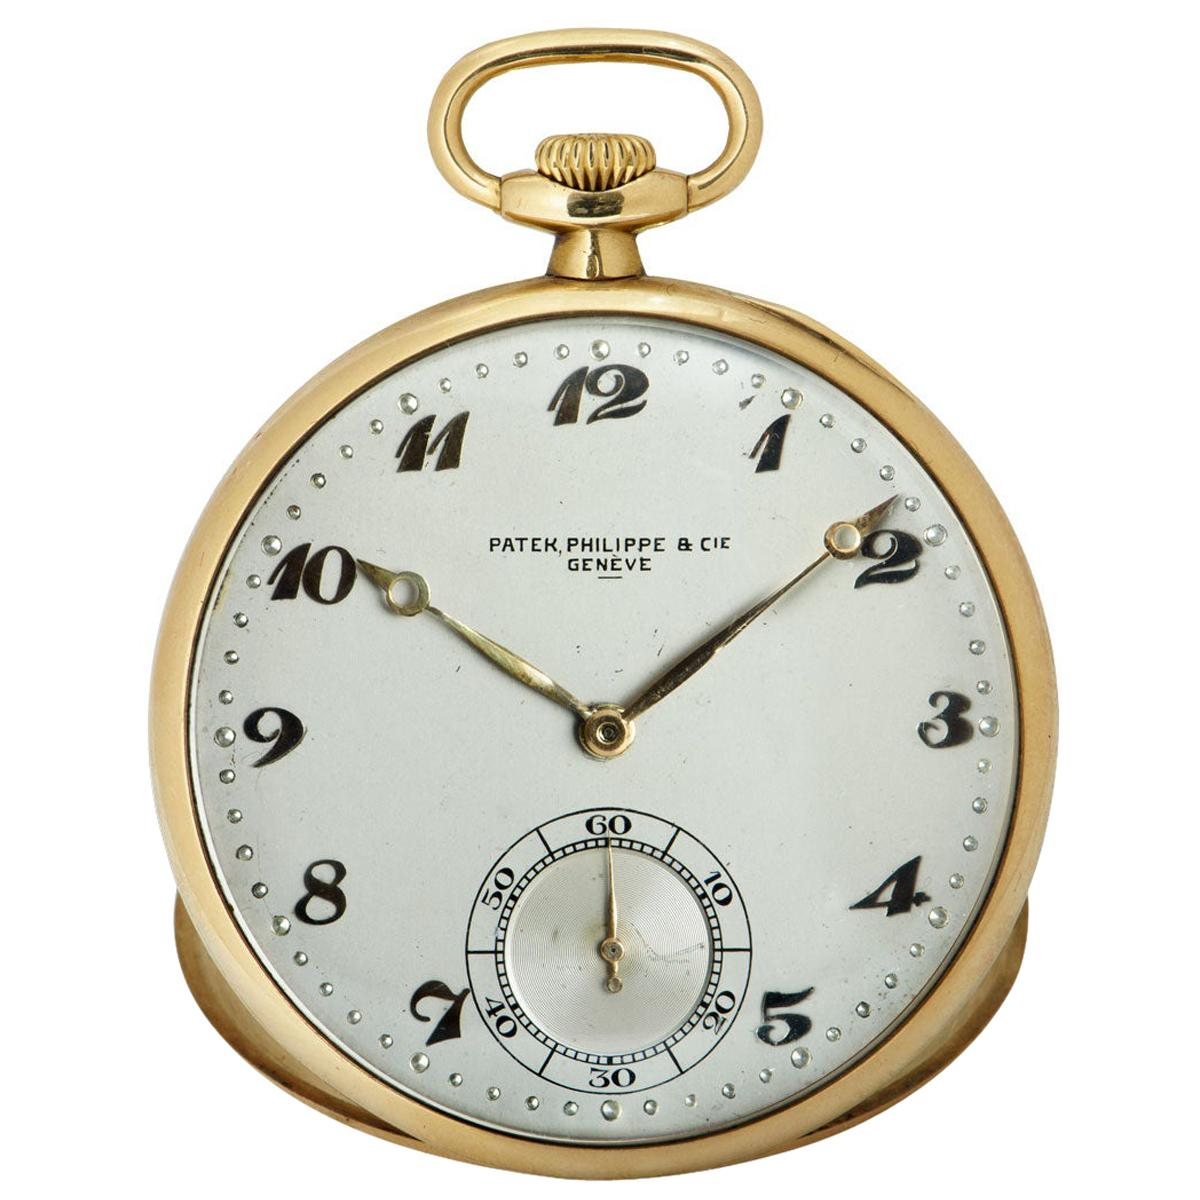 Patek Philippe Open Face Pocket Watch Vintage Gents 18k Yellow Gold Silver Dial